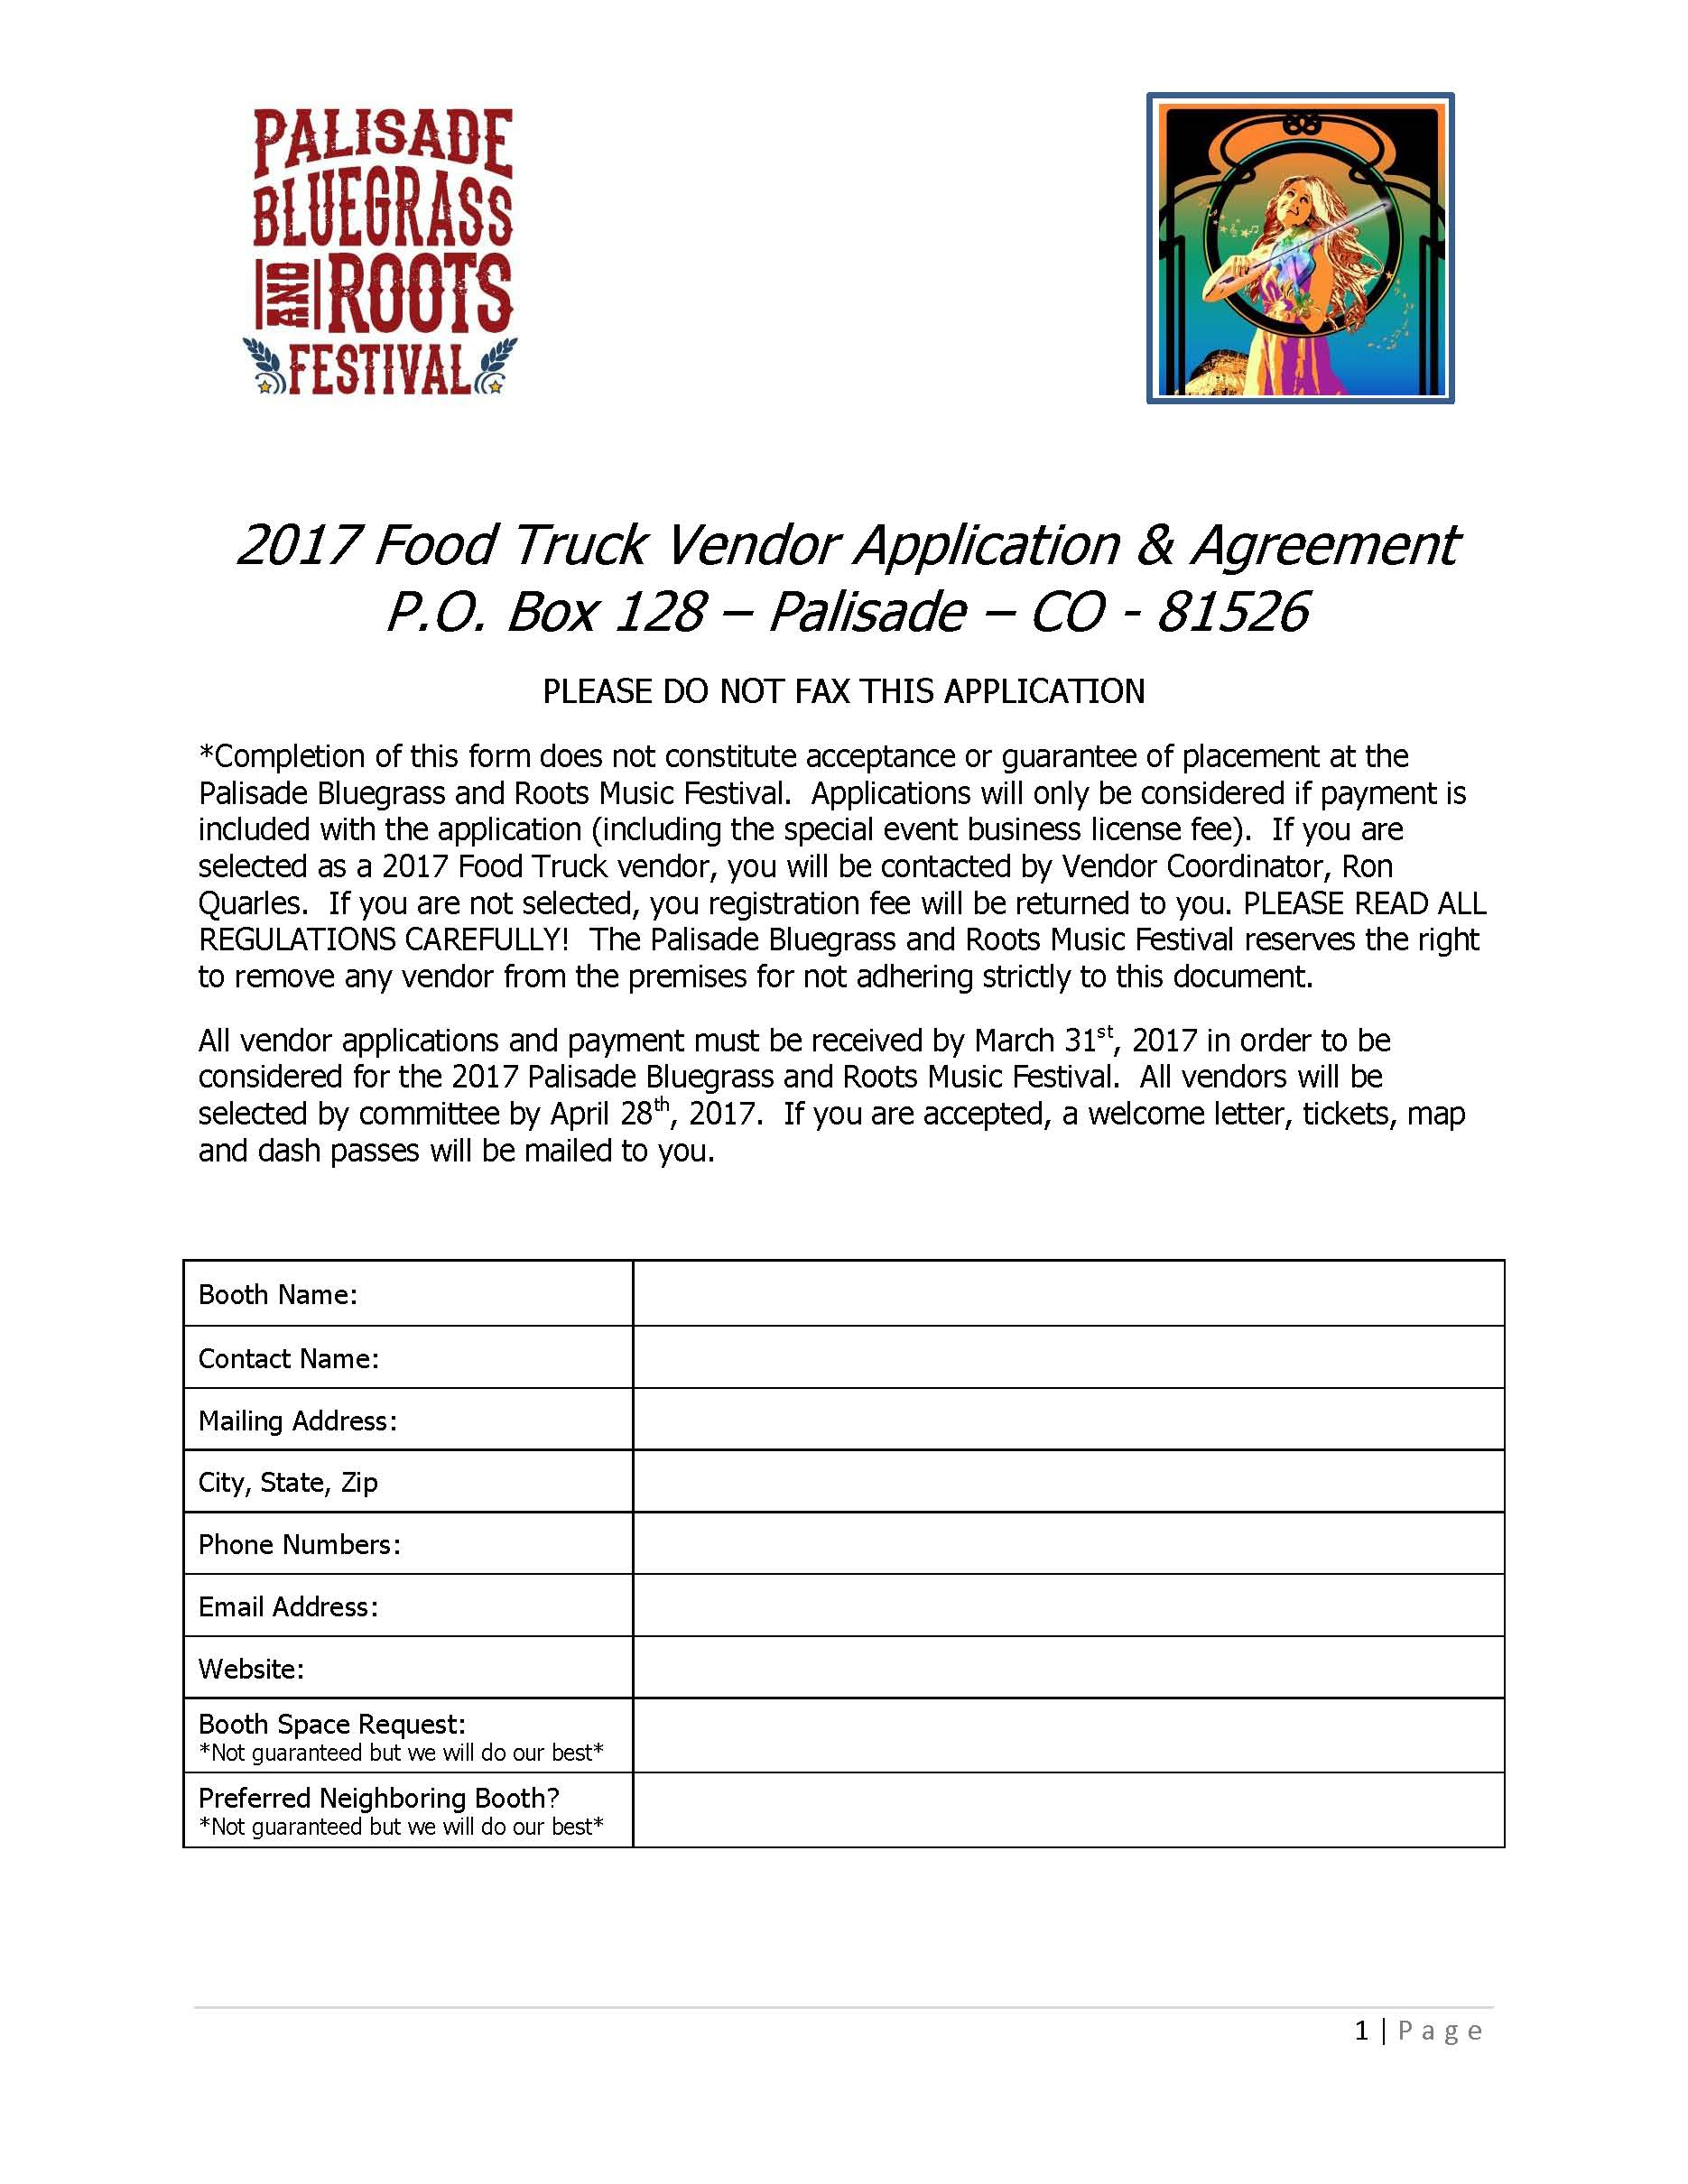 2017 Food Truck Vendor Application Page 1